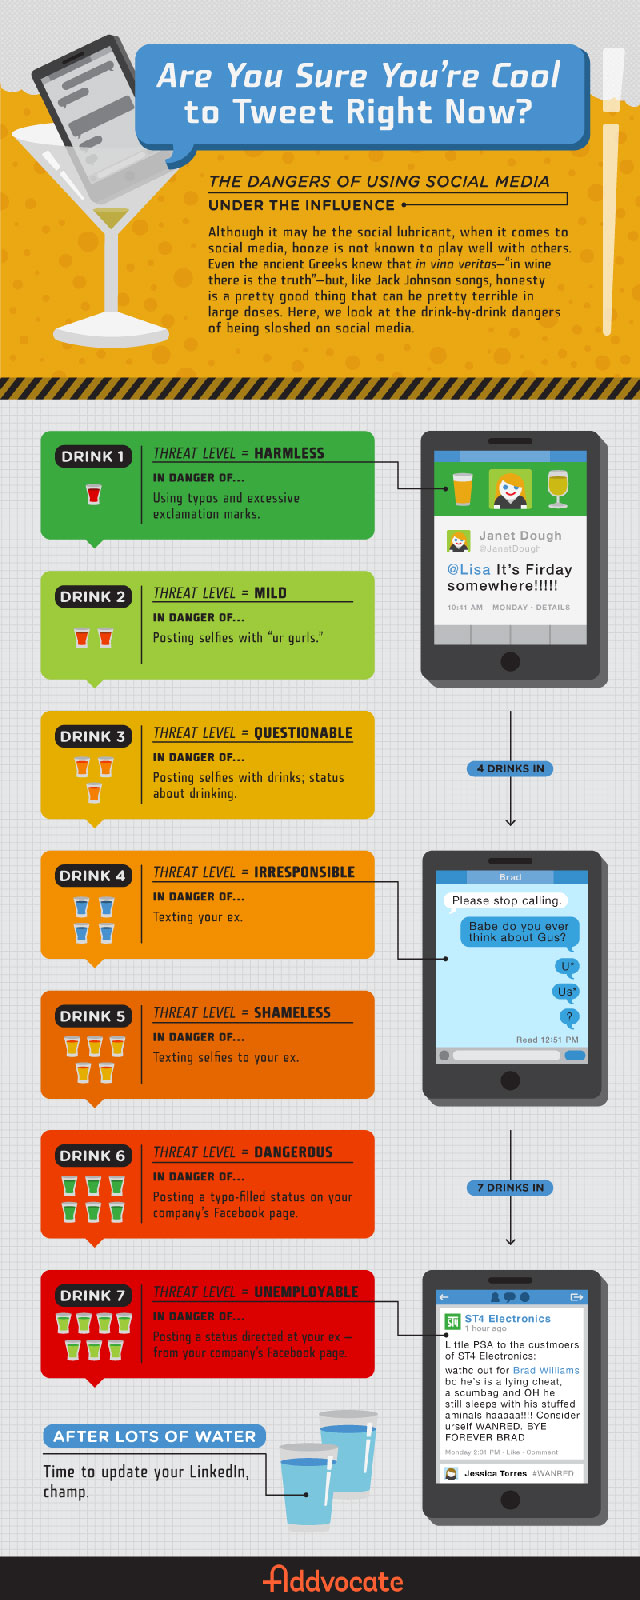 Addv-Drunk-Social-Media-Infographic-BestBuzz